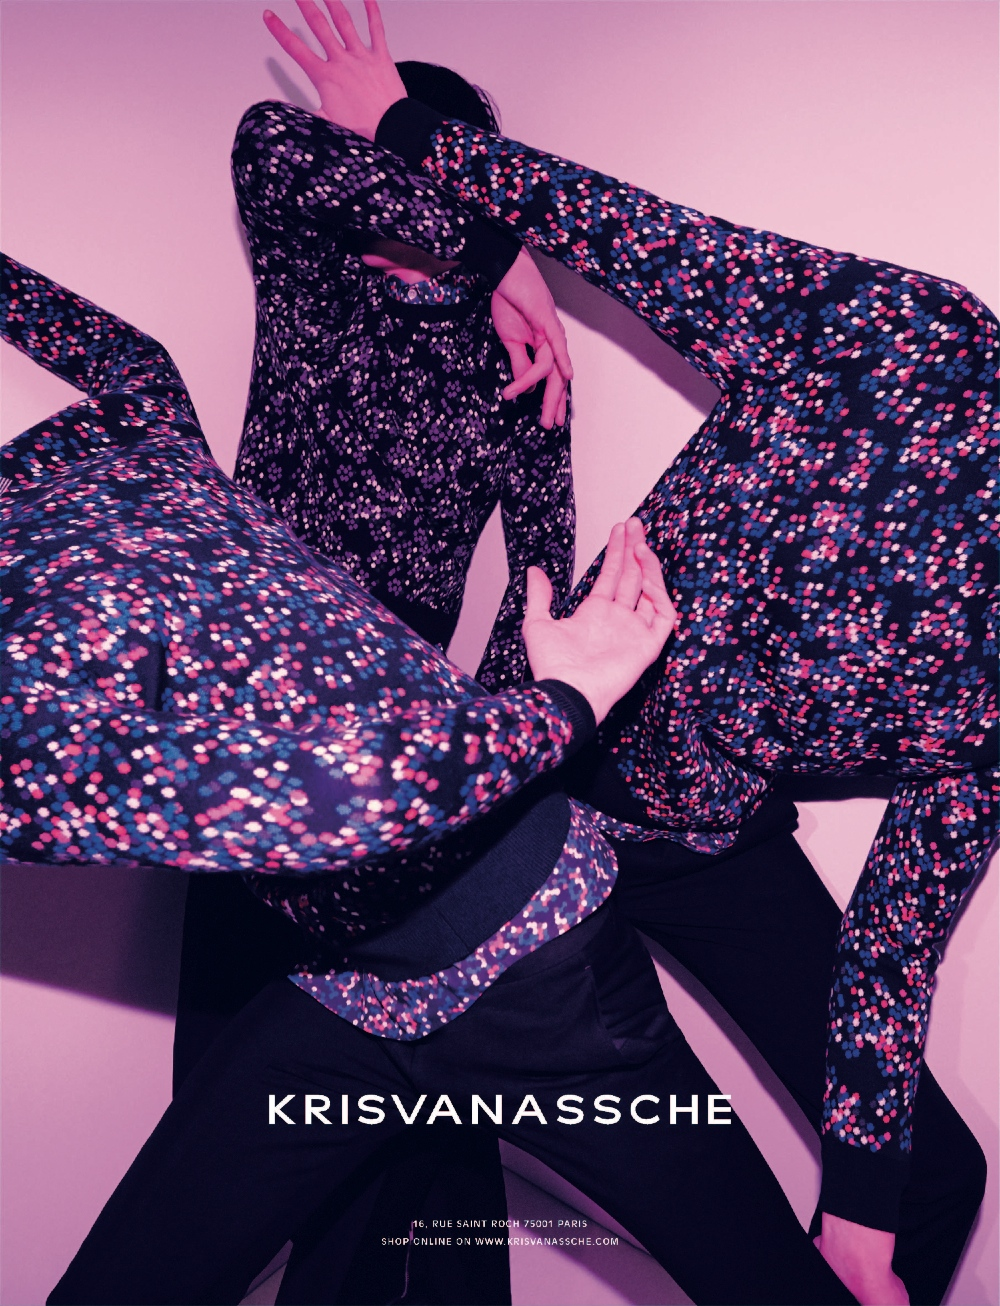 KRISVANASSCHE Fall Winter 2014 Ad Campaign 4